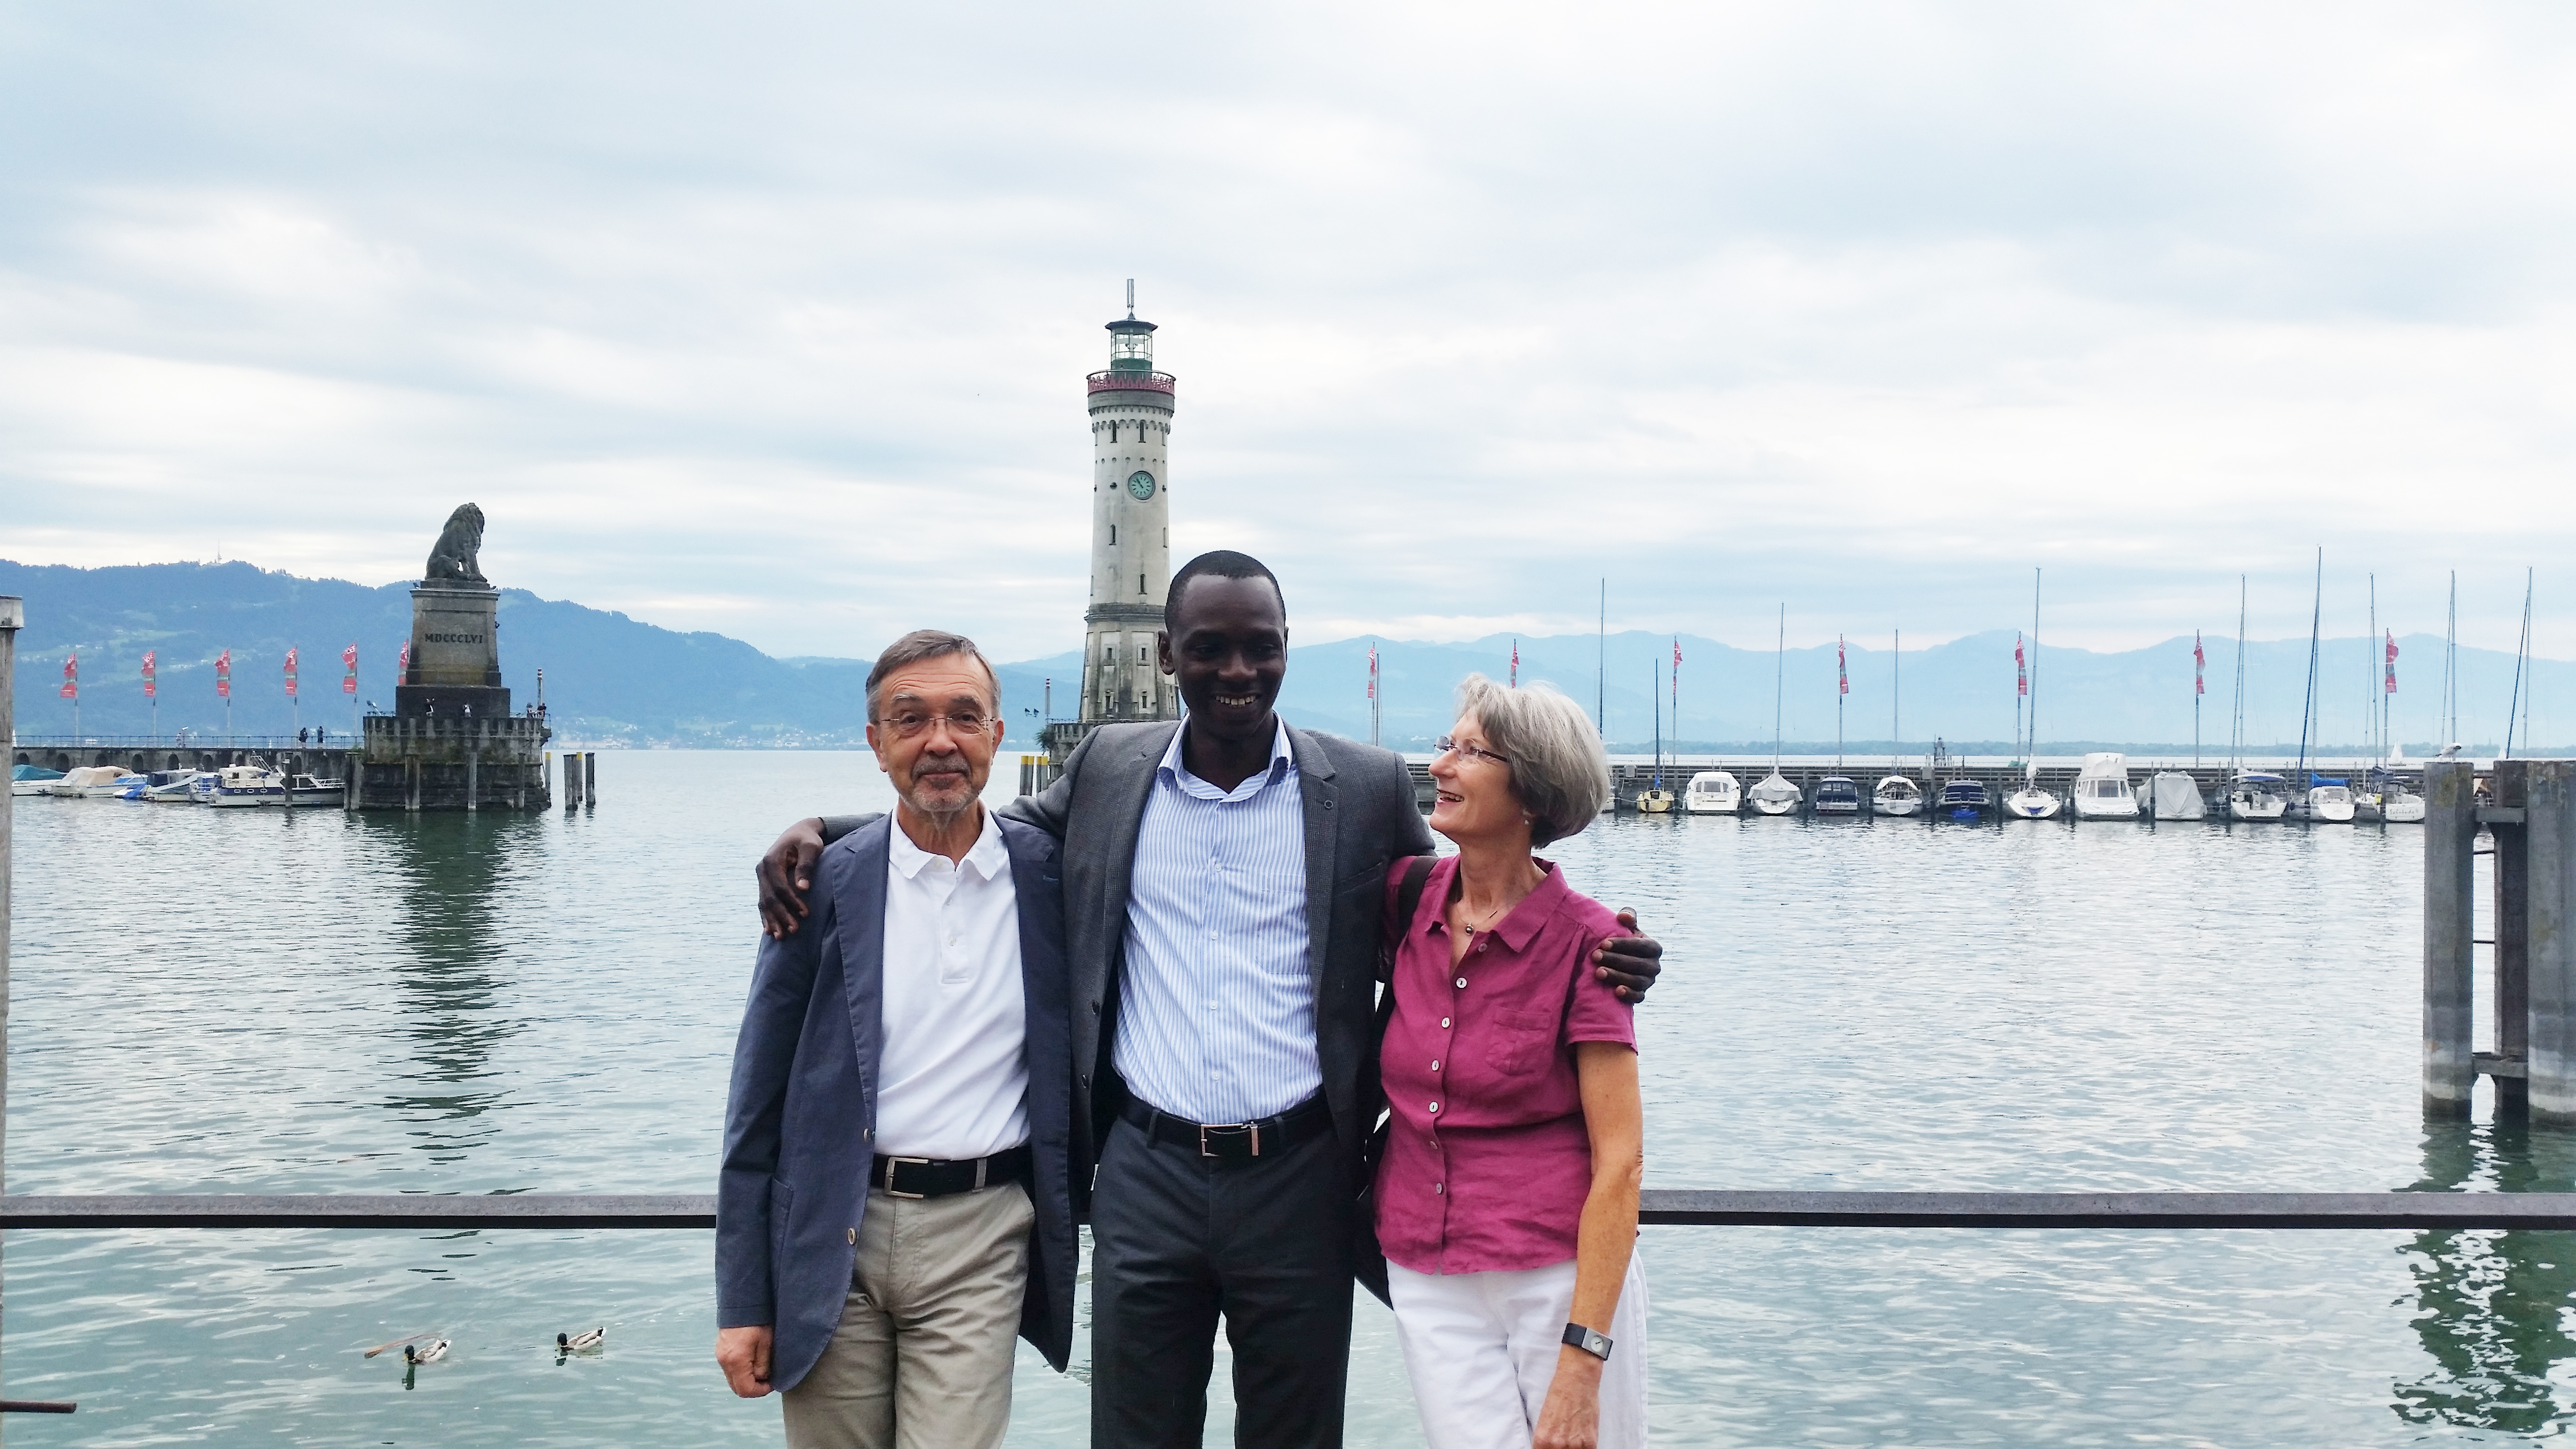 Elom Aglago und seine Gastfamilie in Lindau. Credit: Christoph Schumacher/Lindau Nobel Laureate Meetings